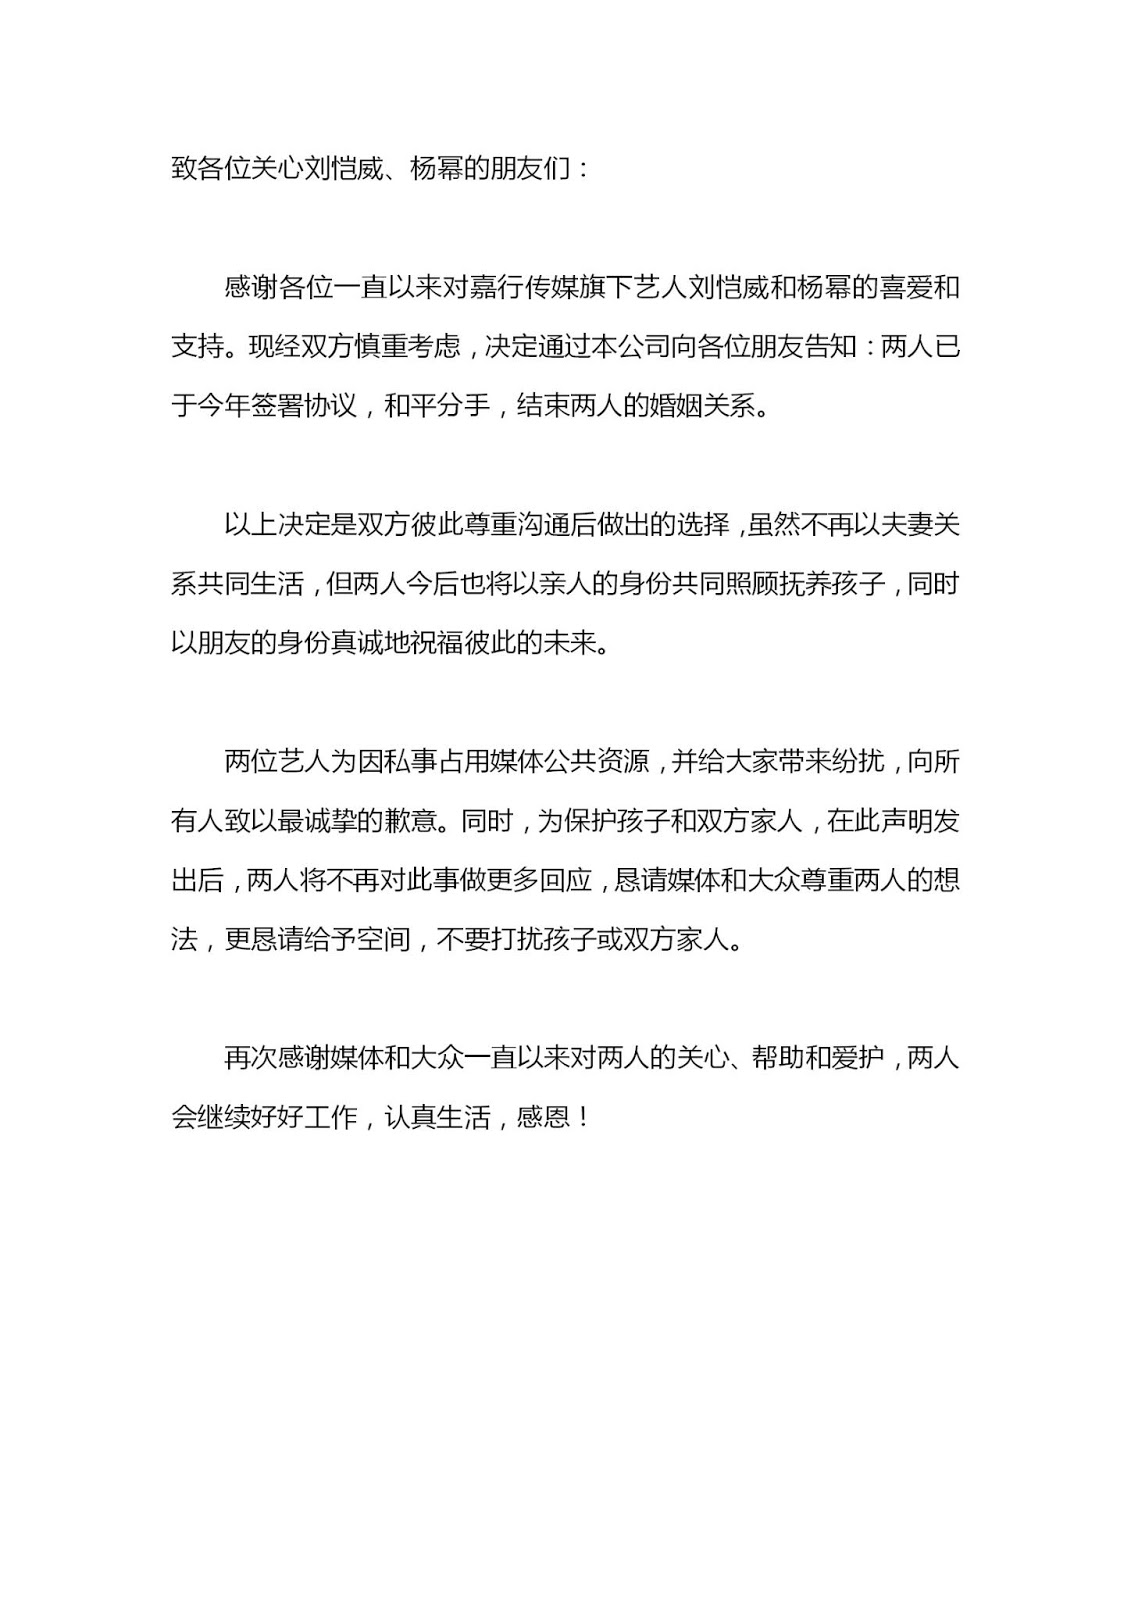 Yang Mi Hawick Lau divorce statement via Jaywalk Studio